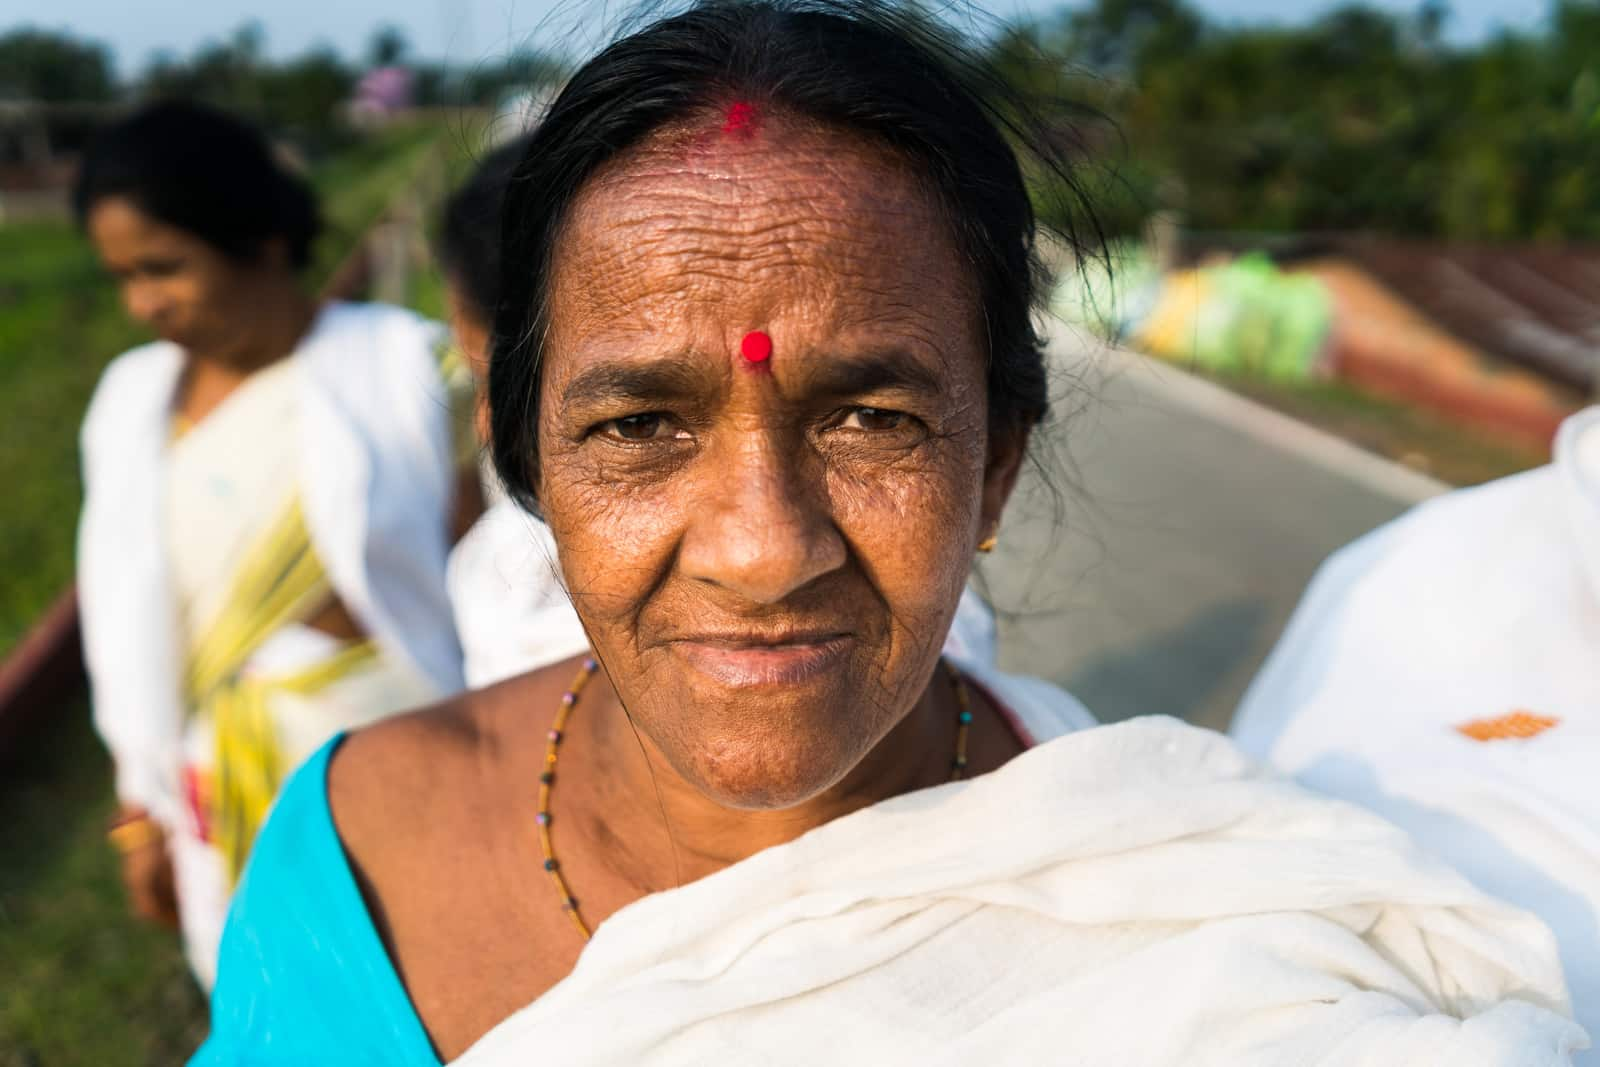 Reasons to love India - An Indian aunty in Dibrugarh, Assam state, India - Lost With Purpose travel blog